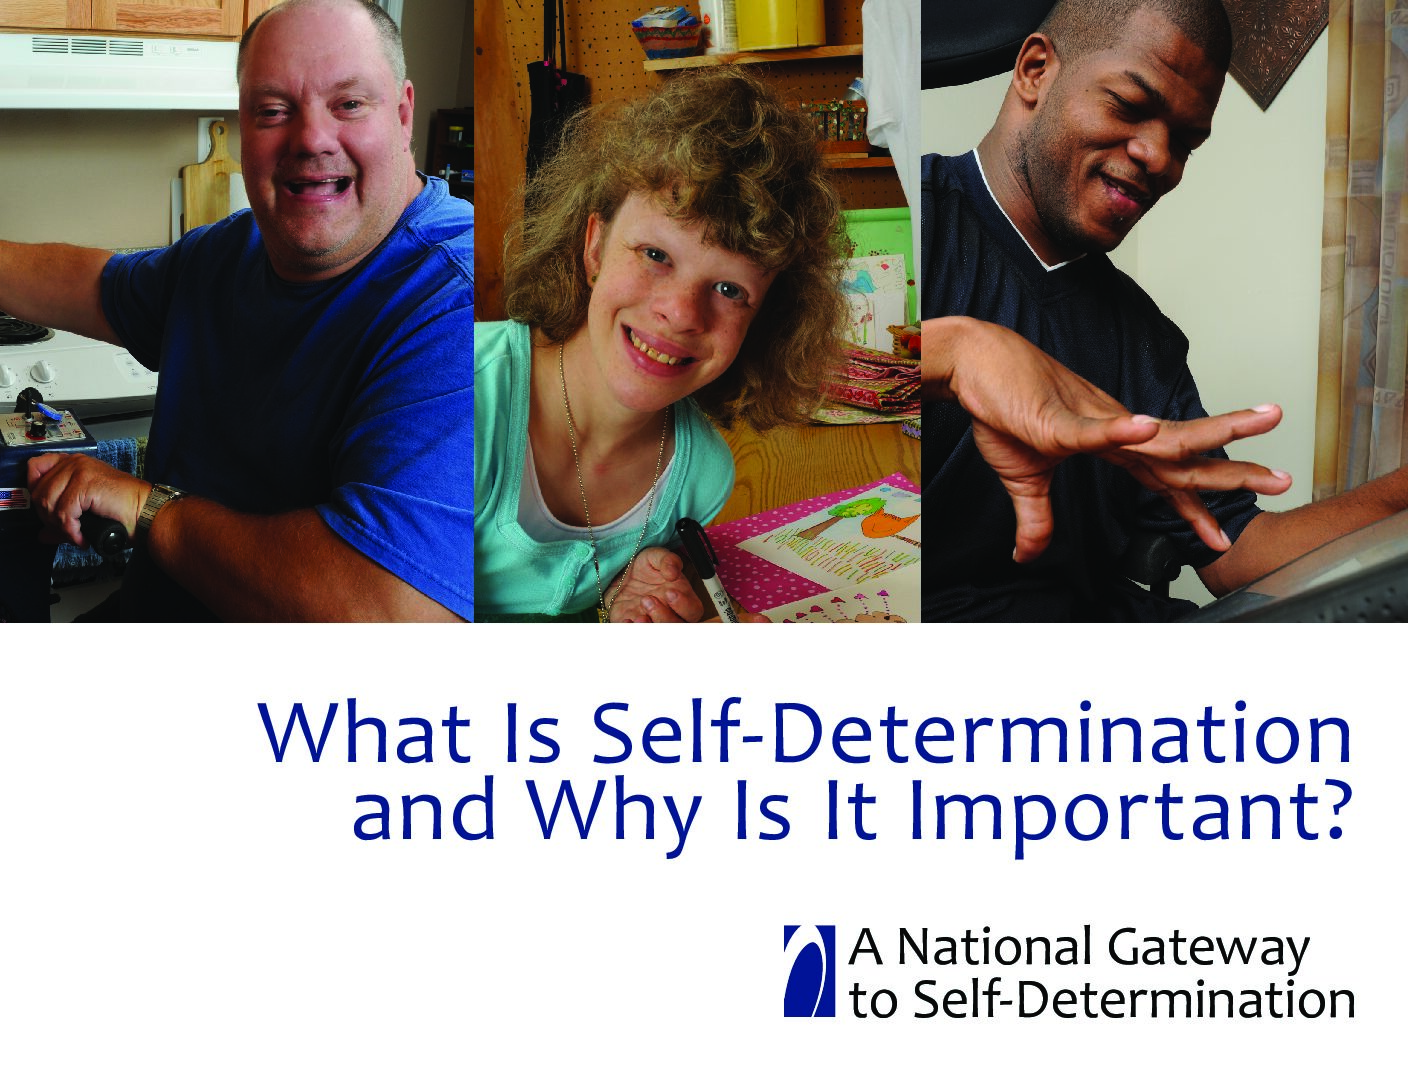 What Is Self-Determination and Why Is It Important?